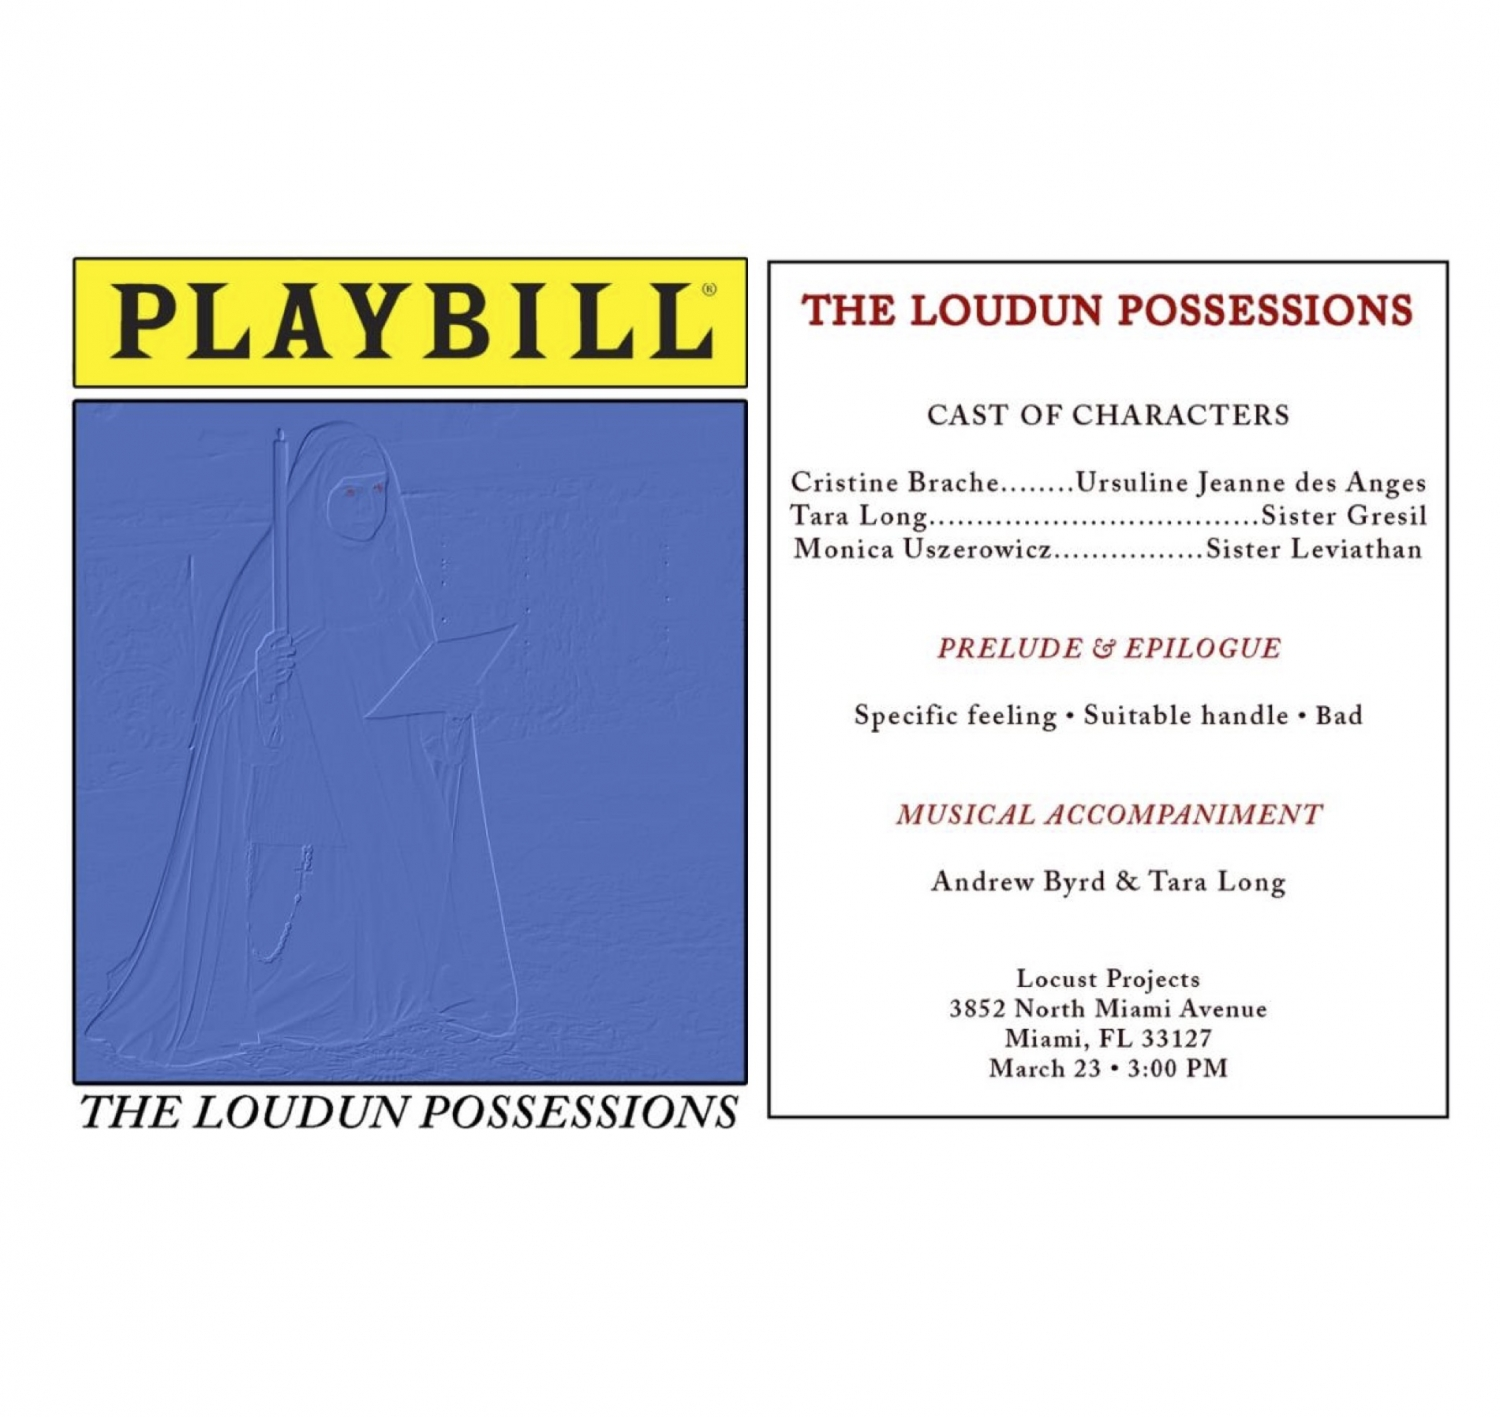 TALK and PERFORMANCE: The Loudun Possessions